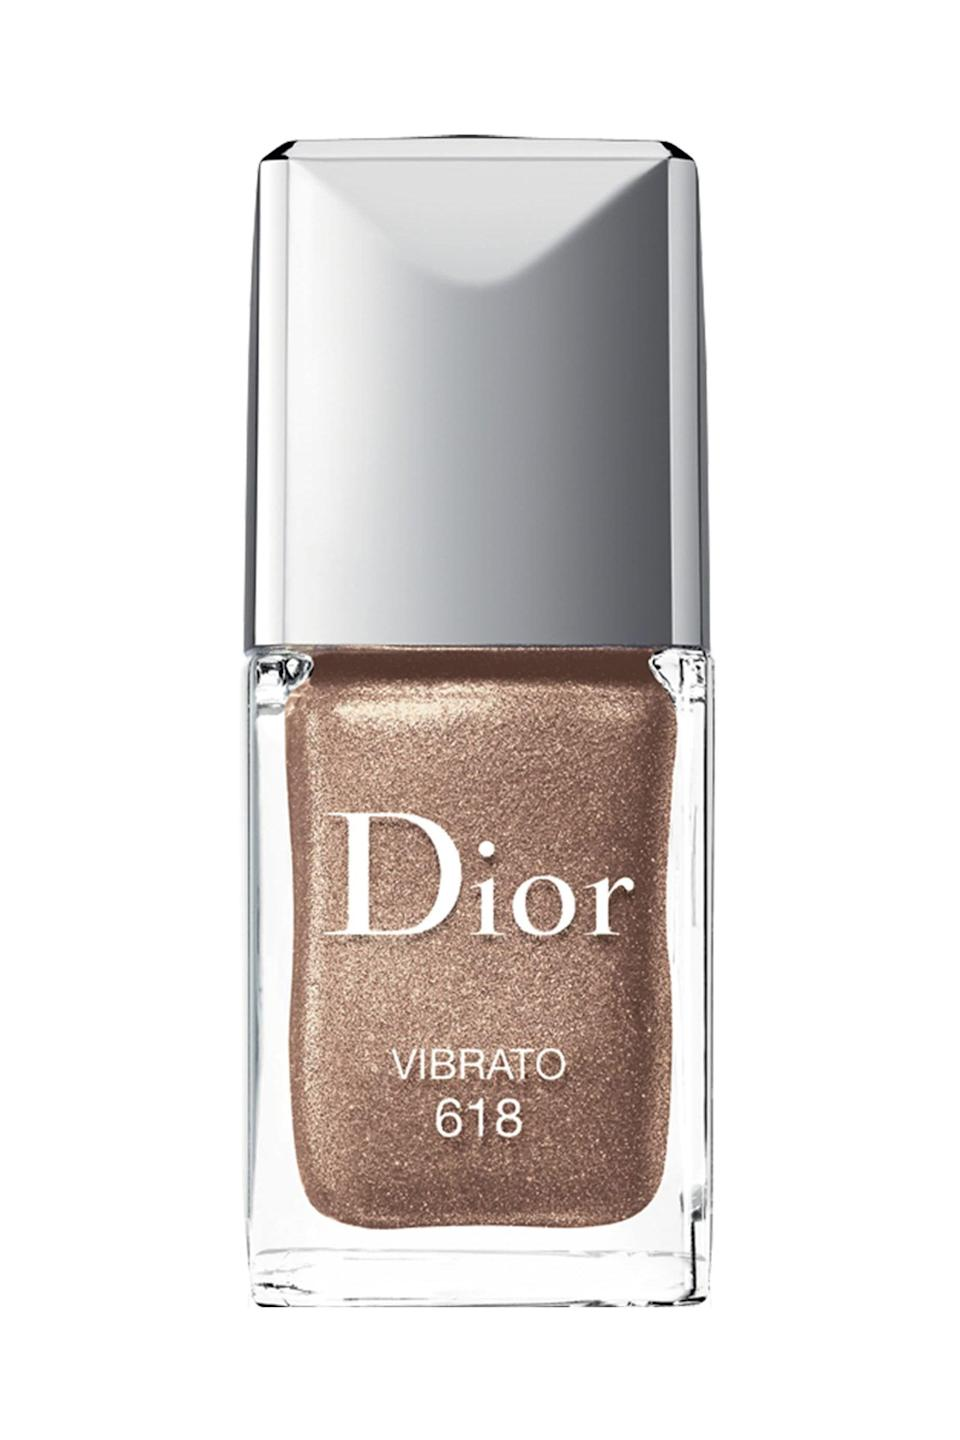 """<p><strong>Dior </strong></p><p>nordstrom.com</p><p><strong>$28.00</strong></p><p><a href=""""https://go.redirectingat.com?id=74968X1596630&url=https%3A%2F%2Fwww.nordstrom.com%2Fs%2Fdior-vernis-gel-shine-long-wear-nail-lacquer%2F3717457&sref=https%3A%2F%2Fwww.marieclaire.com%2Fbeauty%2Fg3965%2Ffall-nail-colors%2F"""" rel=""""nofollow noopener"""" target=""""_blank"""" data-ylk=""""slk:SHOP IT"""" class=""""link rapid-noclick-resp"""">SHOP IT</a></p><p>Metallic, but make it fashun. Leave it to Dior to turn sparkle up several notches with this bronze gold shade. It's one of those party-ready polishes you wear when you're guaranteed to have a good time. </p>"""